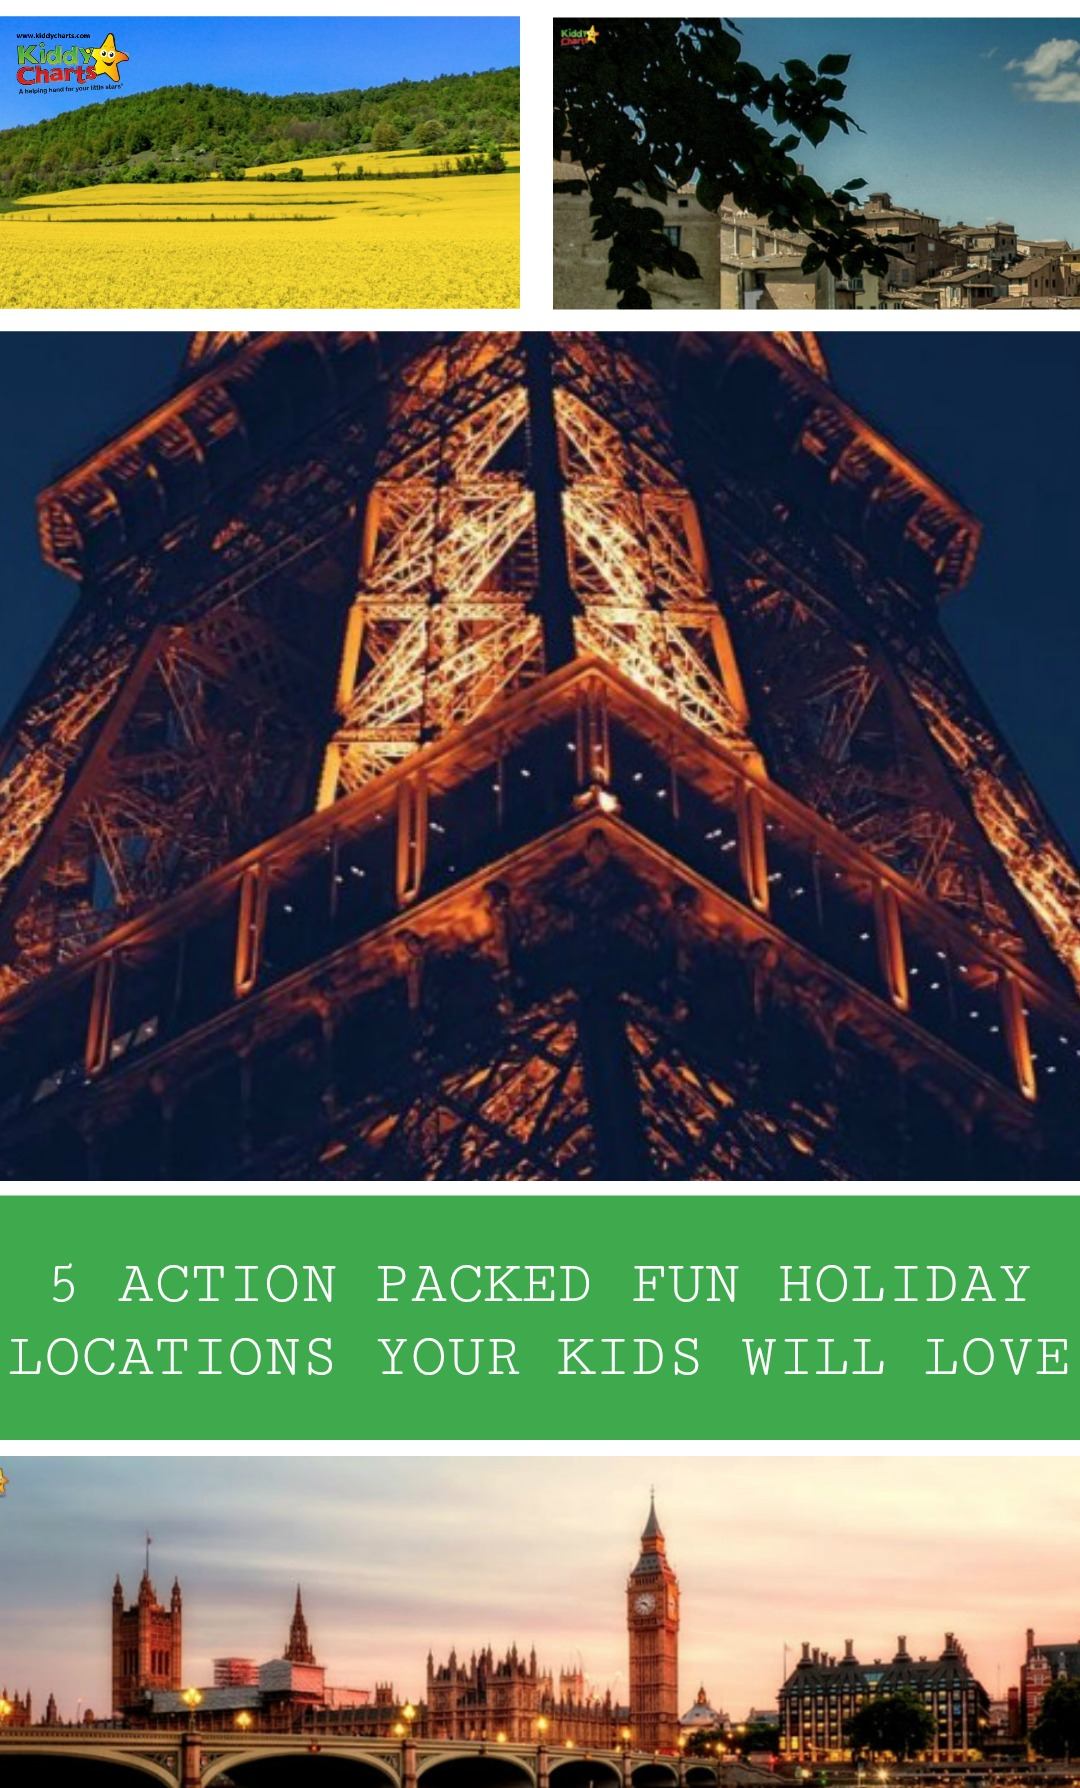 We've got 5 great ideas for holidays with the kids; check them out they might surprise you!